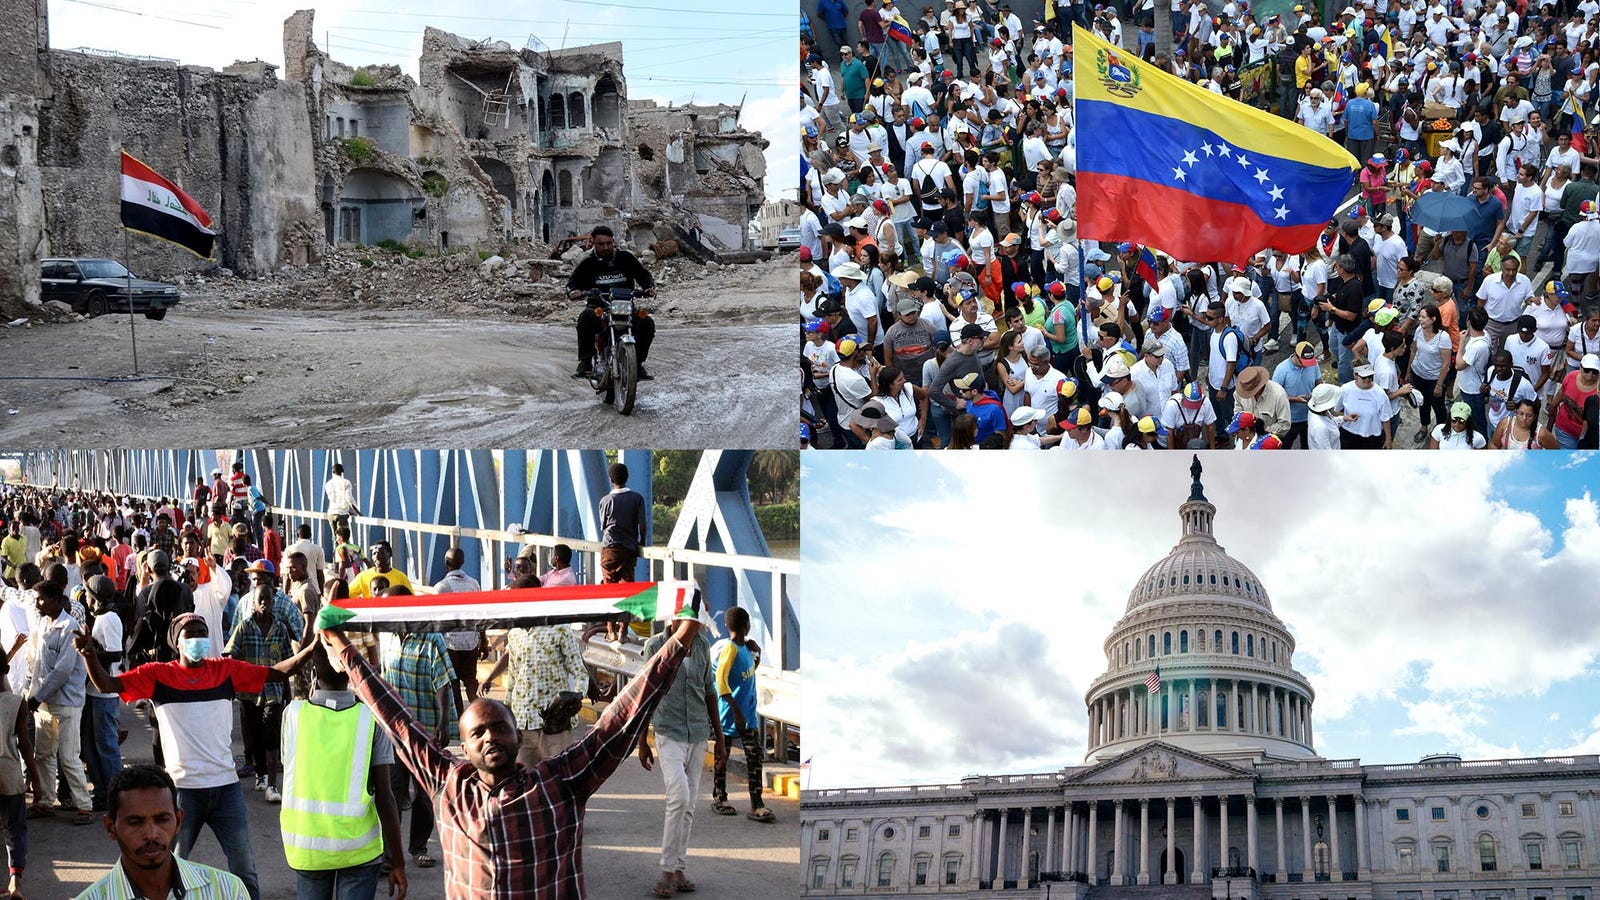 BREAKING: Situation Worsens In Venezuela, Bolivia, U.S., Japan, Mexico, Iraq, Spain